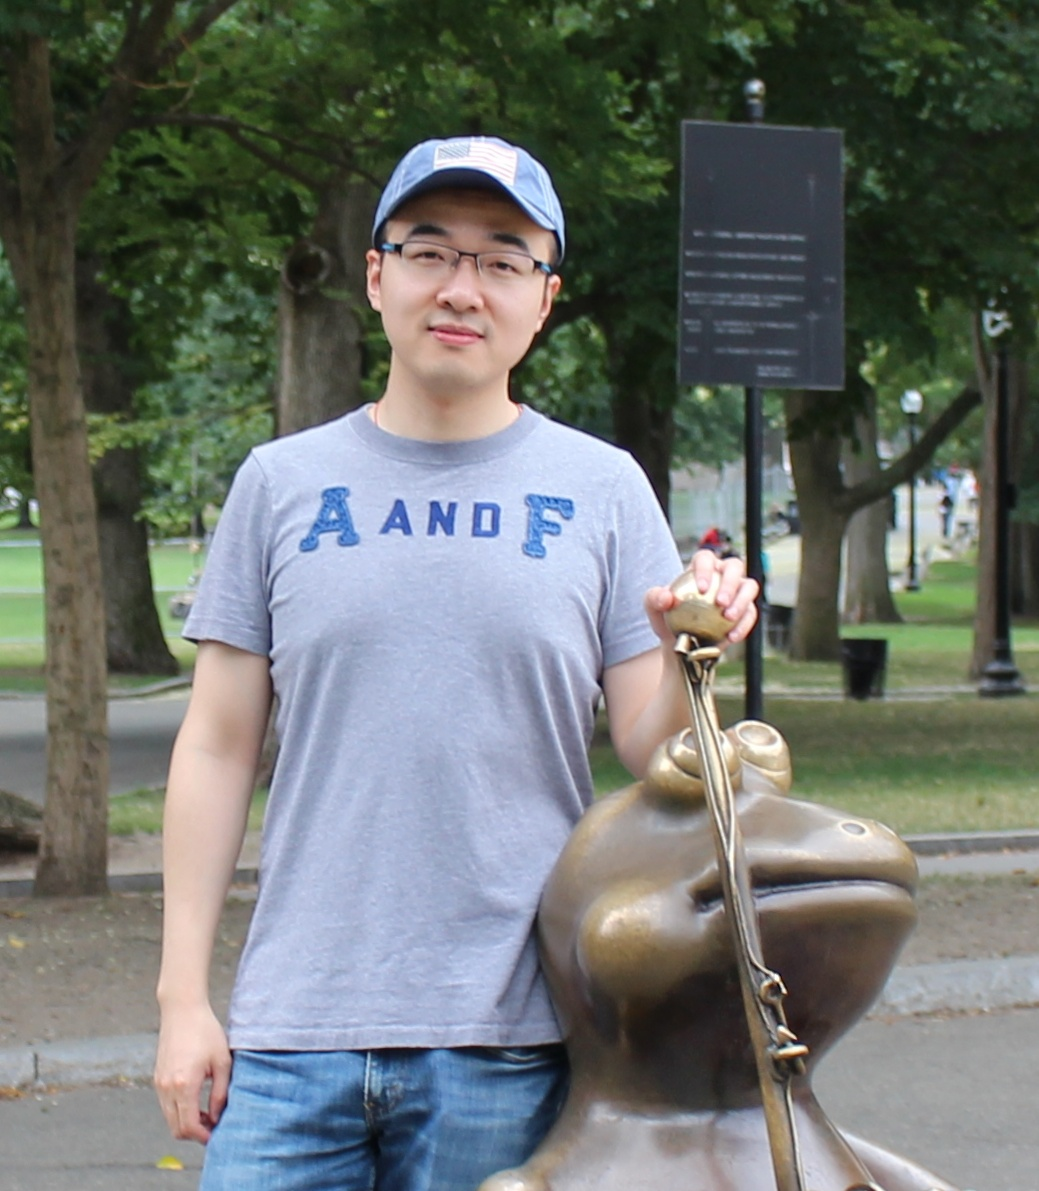 Guoqing XiangPostdoctoral Fellow - Guoqing received a B.S. in Pharmacy from China Pharmaceutical University in 2013. As an undergraduate, he was introduced to Neuroscience while learning animal behavioral assays. He joined Virginia Commonwealth University for graduate study and worked on mechanism of an opioid - cannabinoid receptor heteromer in Dr. Diomedes Logothetis' lab. Guoqing joined the Levitz lab in 2019.contact: gux4002@med.cornell.edu